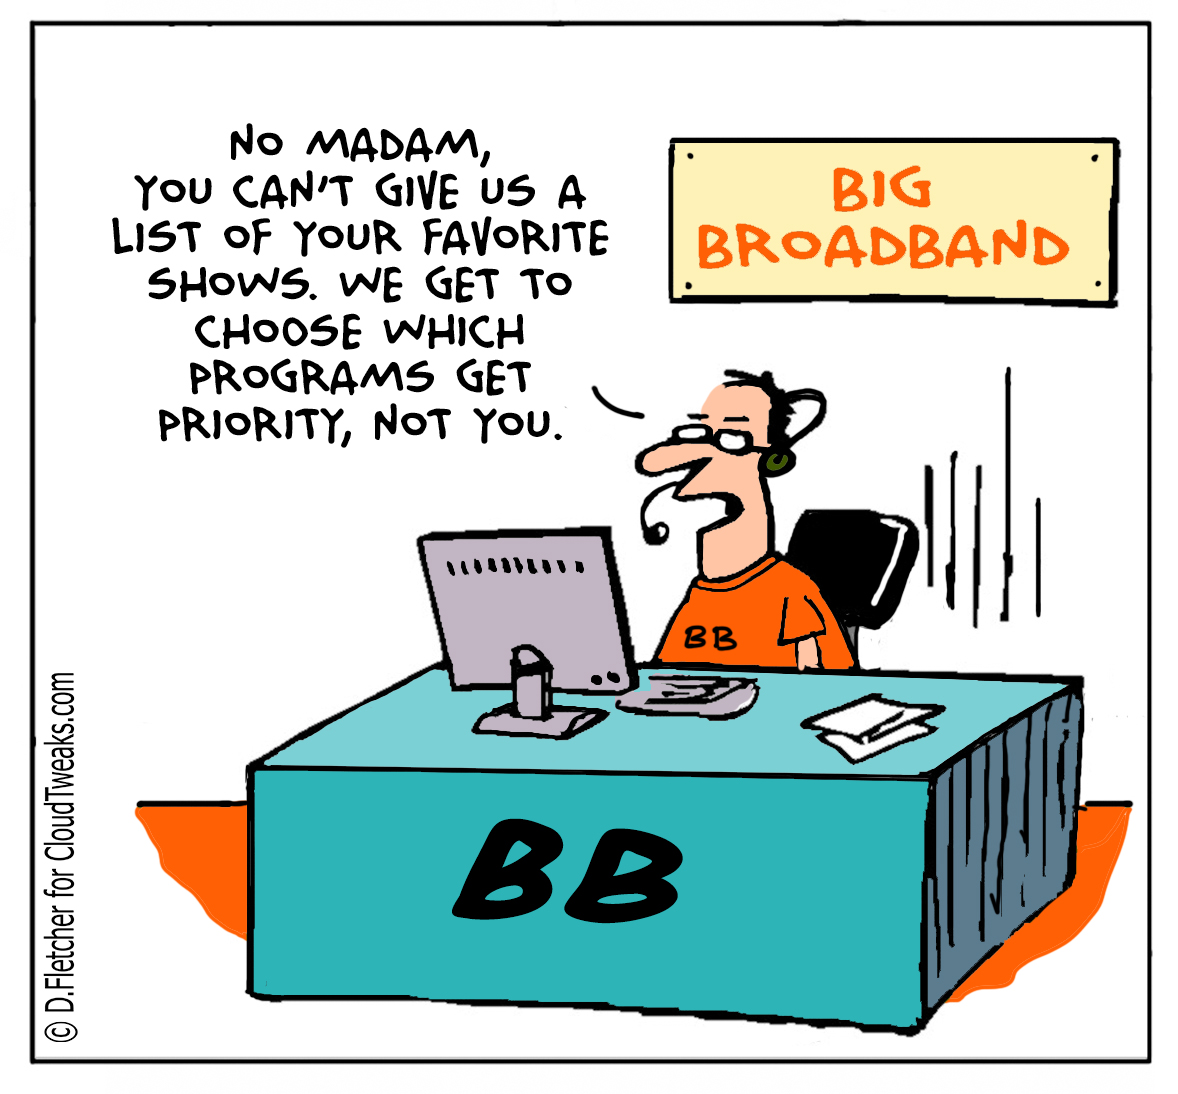 net-big-broadband